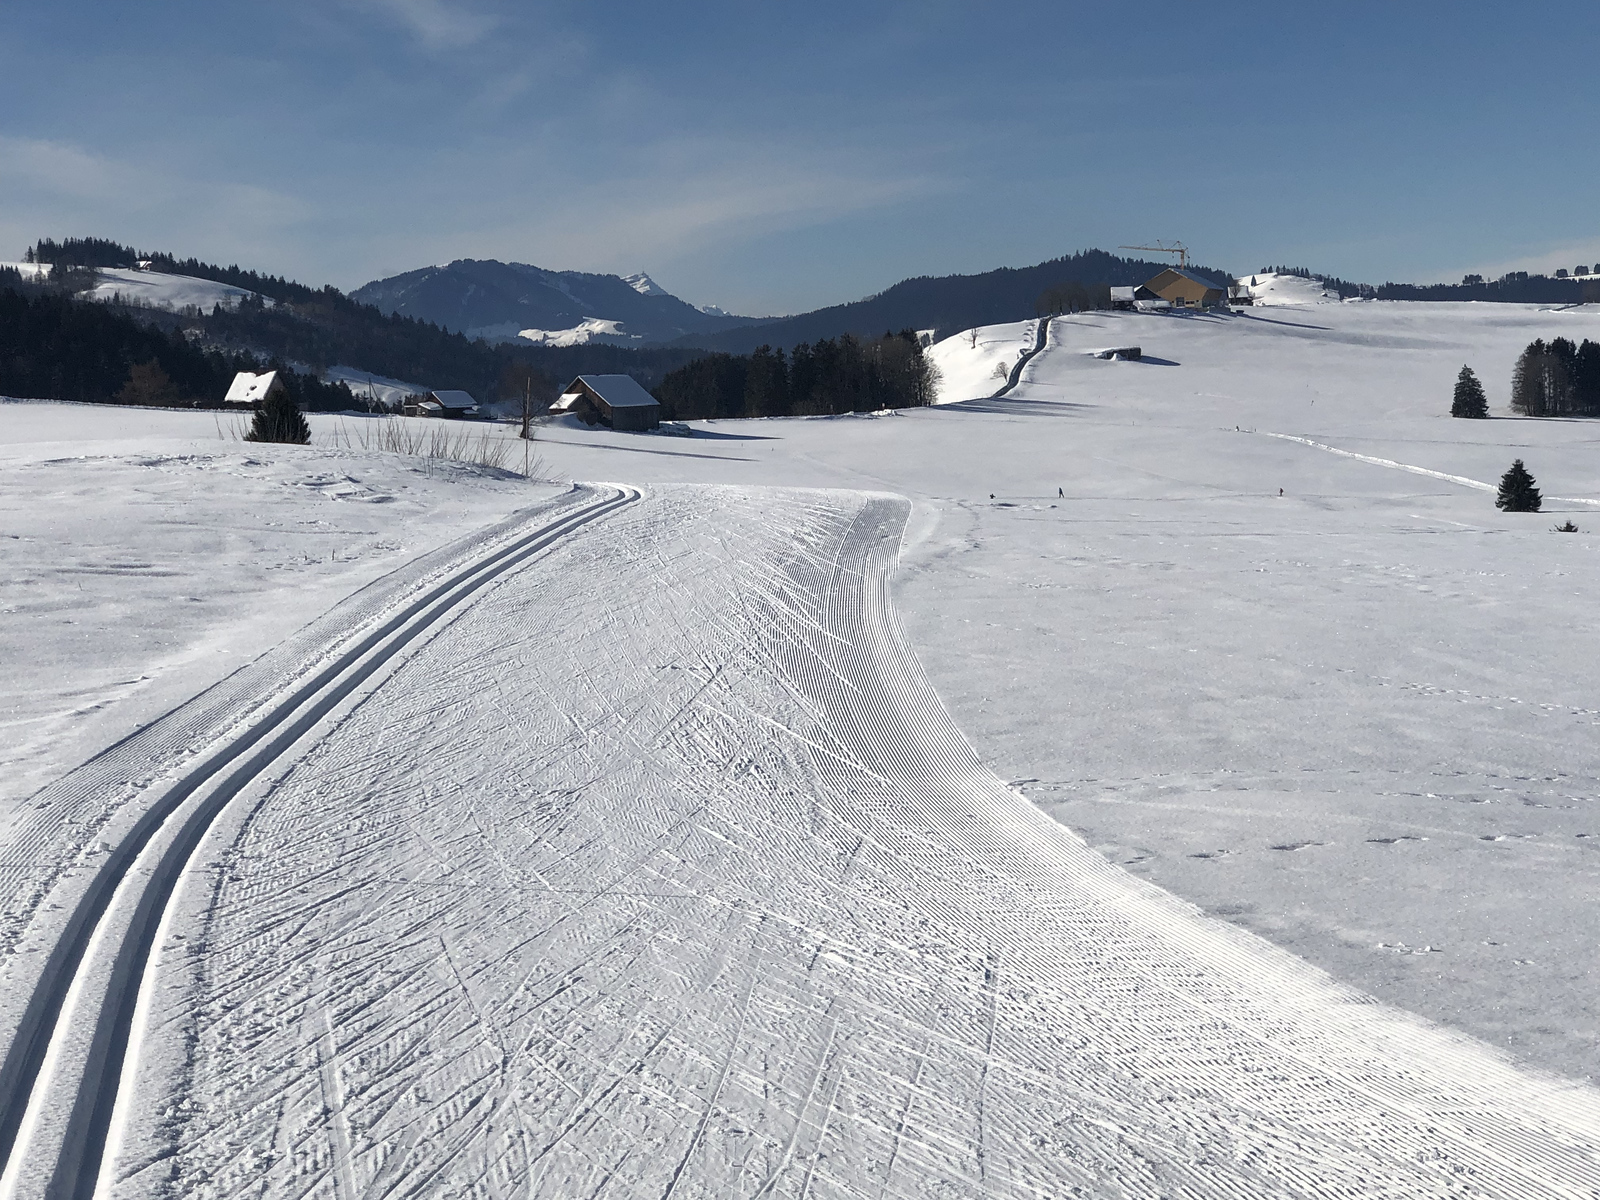 Well skied trails